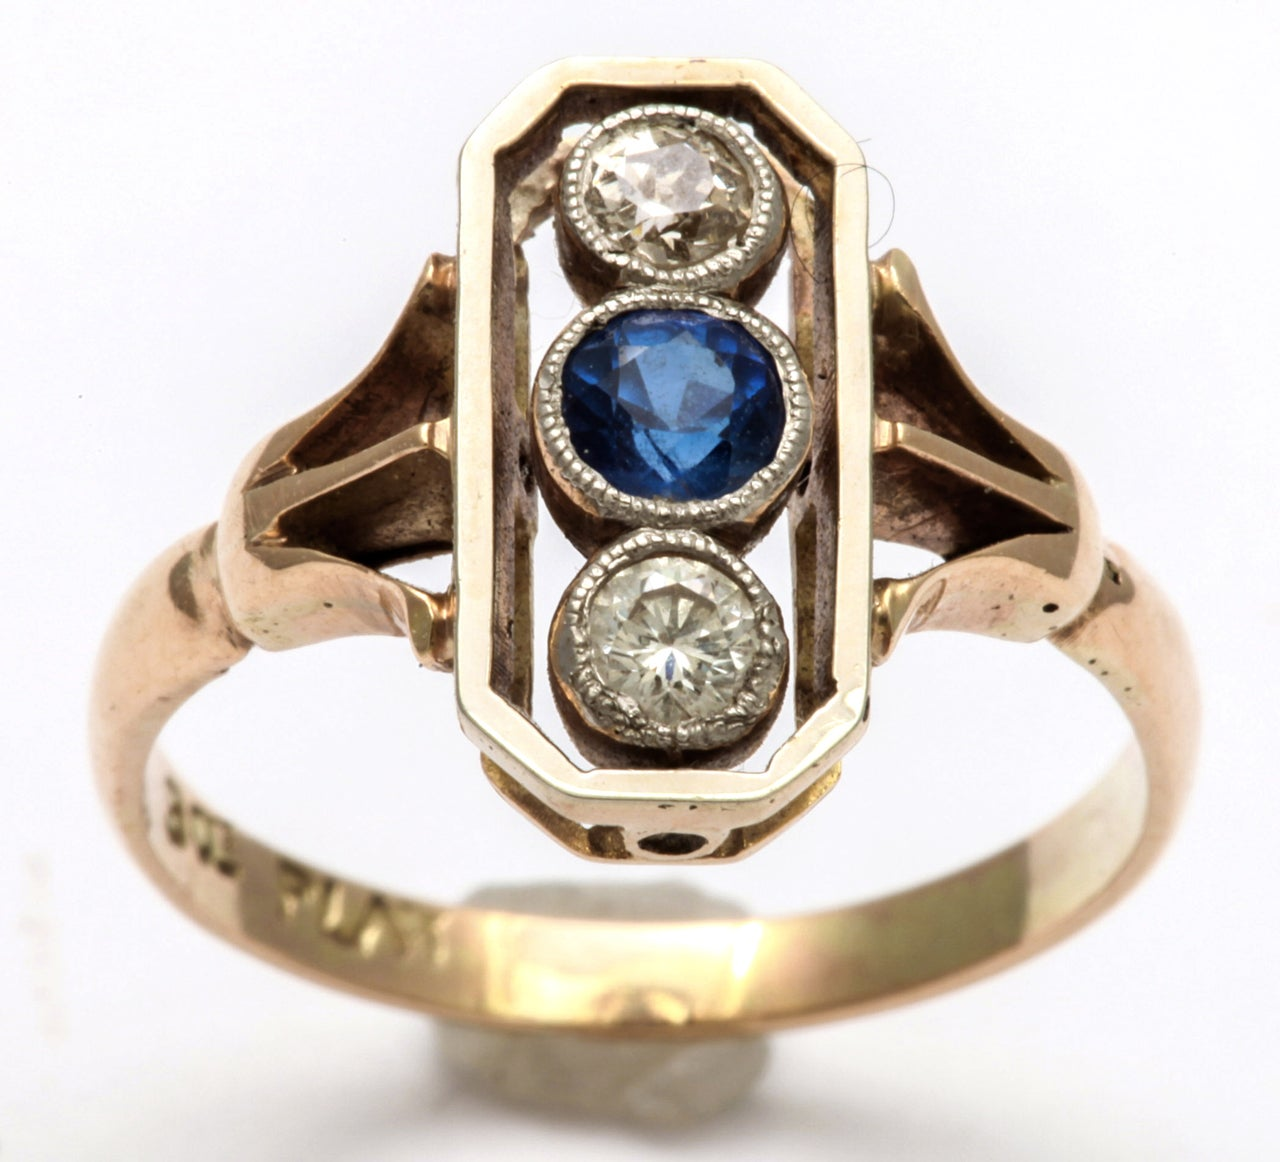 A ring for a child or  the pinky that is small, I thought, as It fit my little finger, but it was enduringly lovely and has entranced me by its sweet character for the last week. With its 5 pt. old mine diamonds and 10pt admiral blue sapphire, the